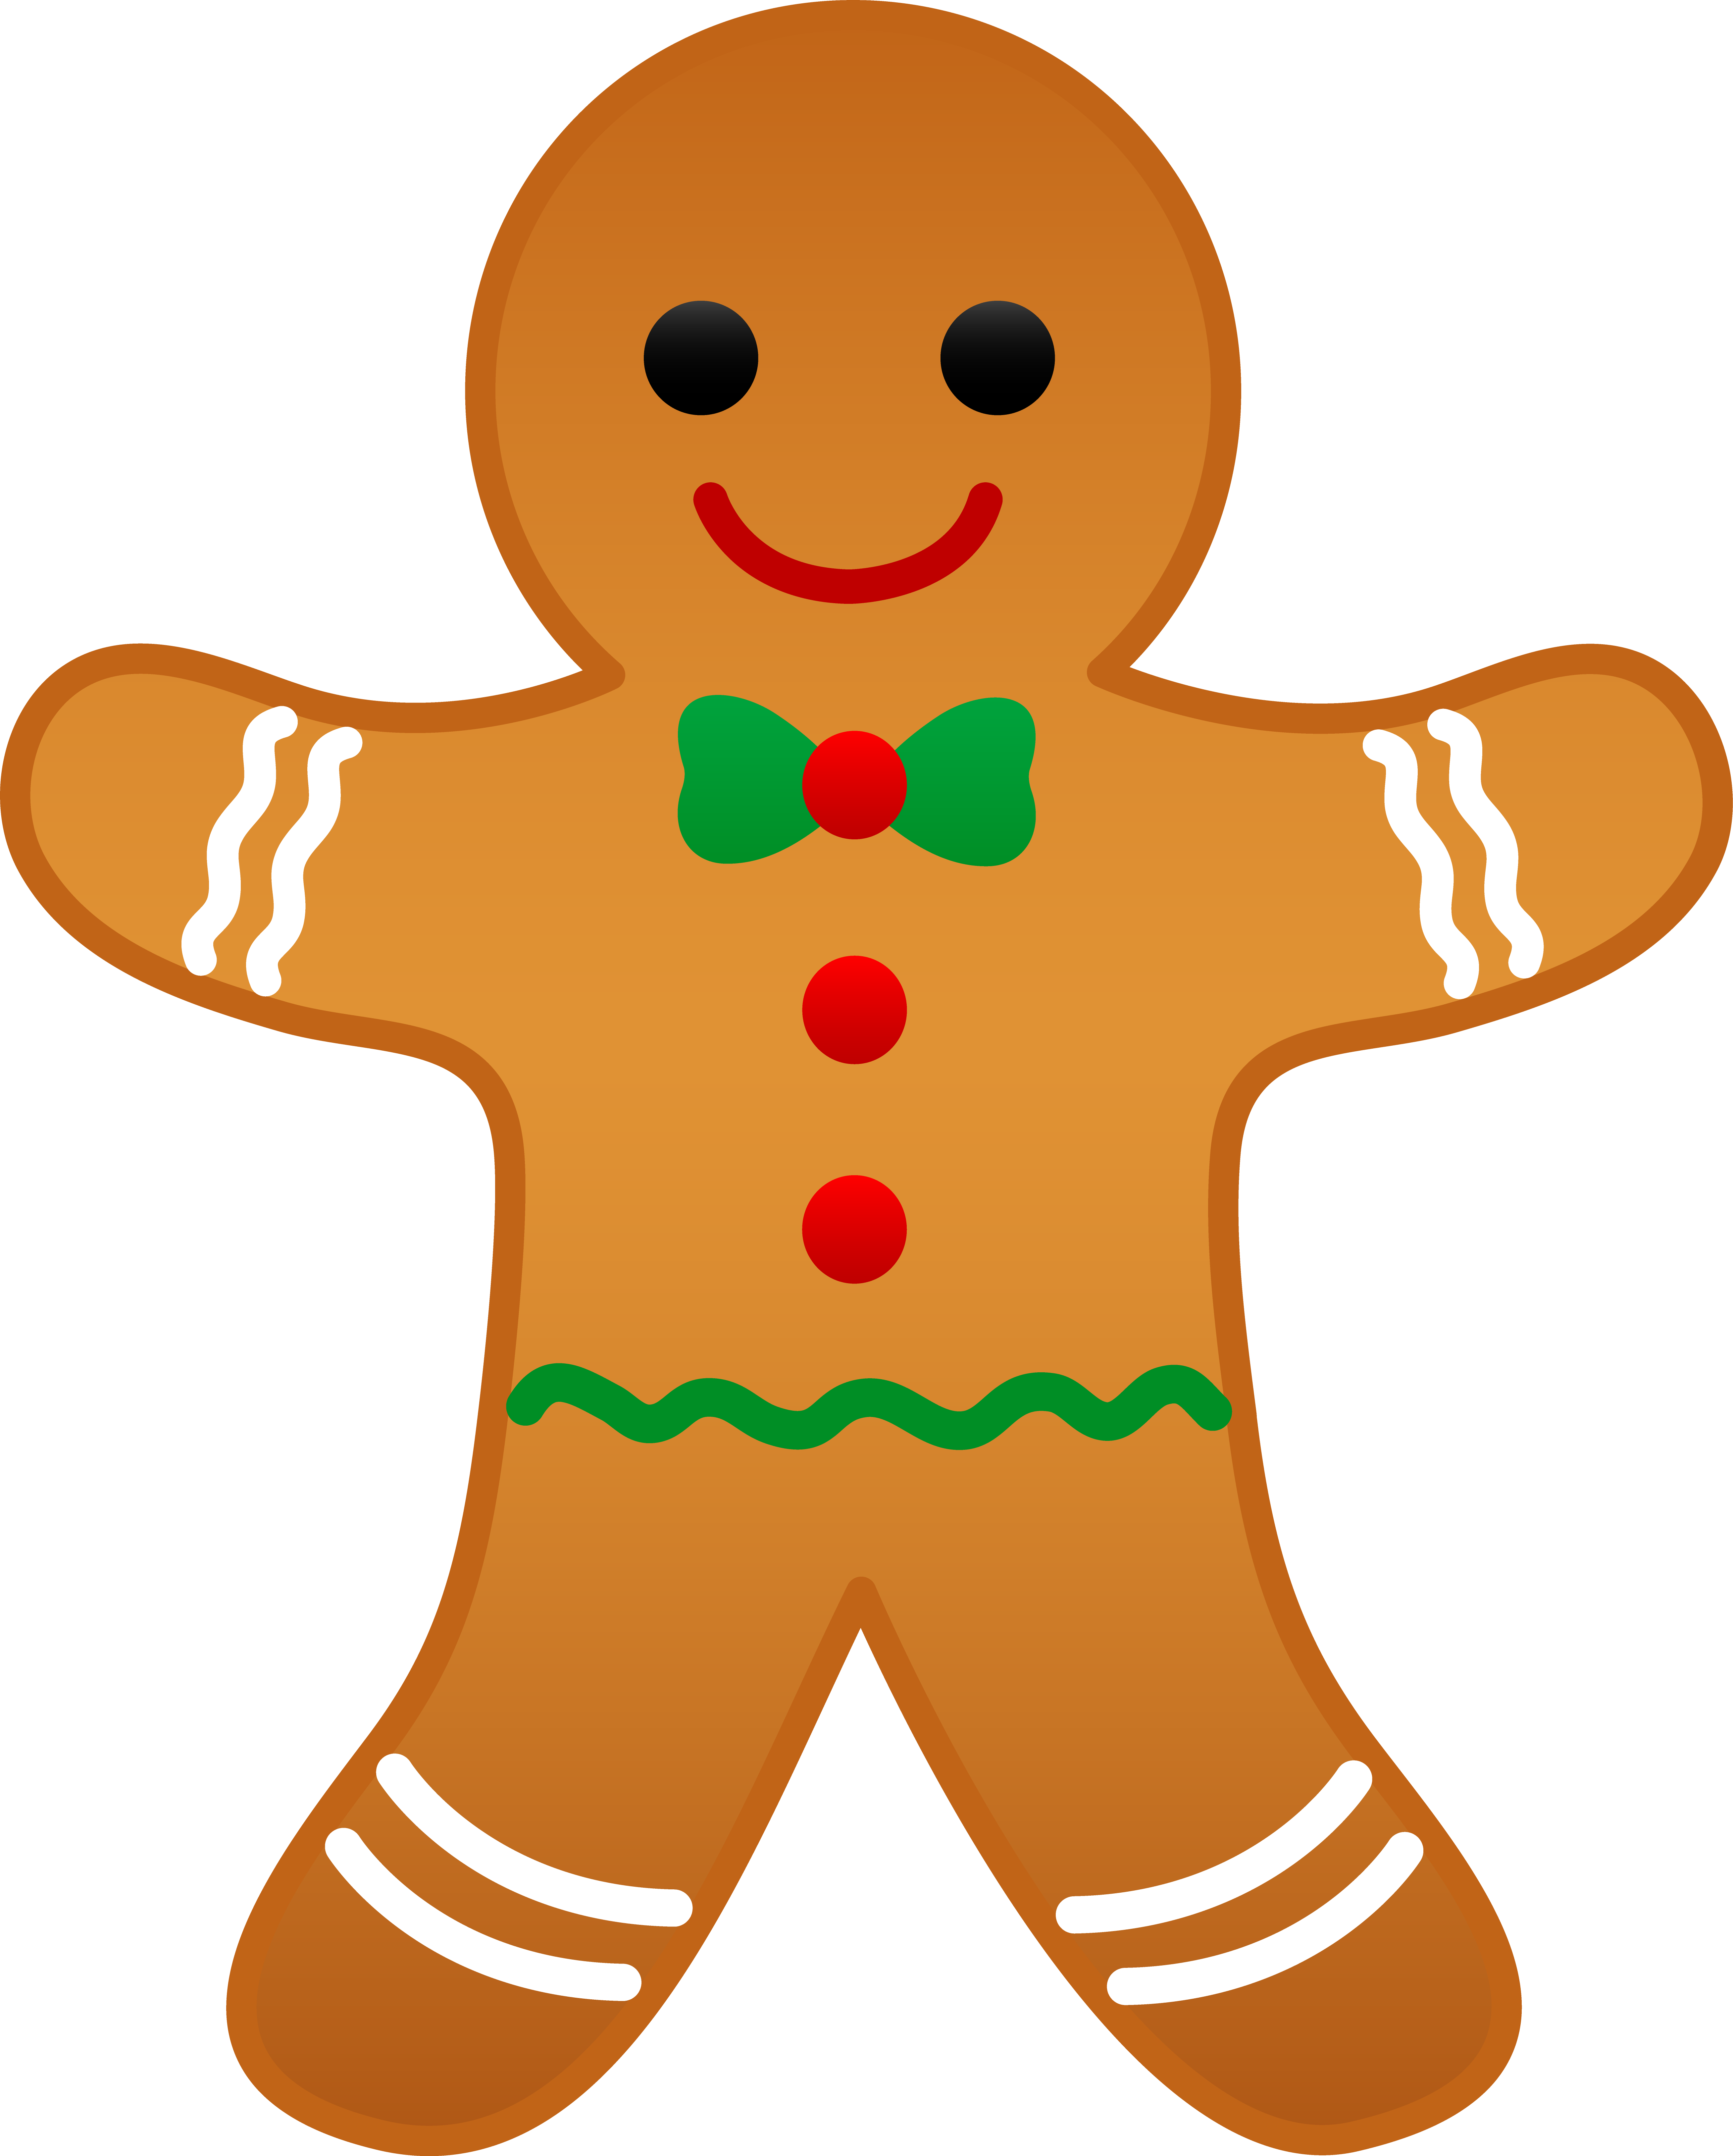 ... Free Clipart Cookies; Christmas Desserts Clip Art - Viewing Gallery ...